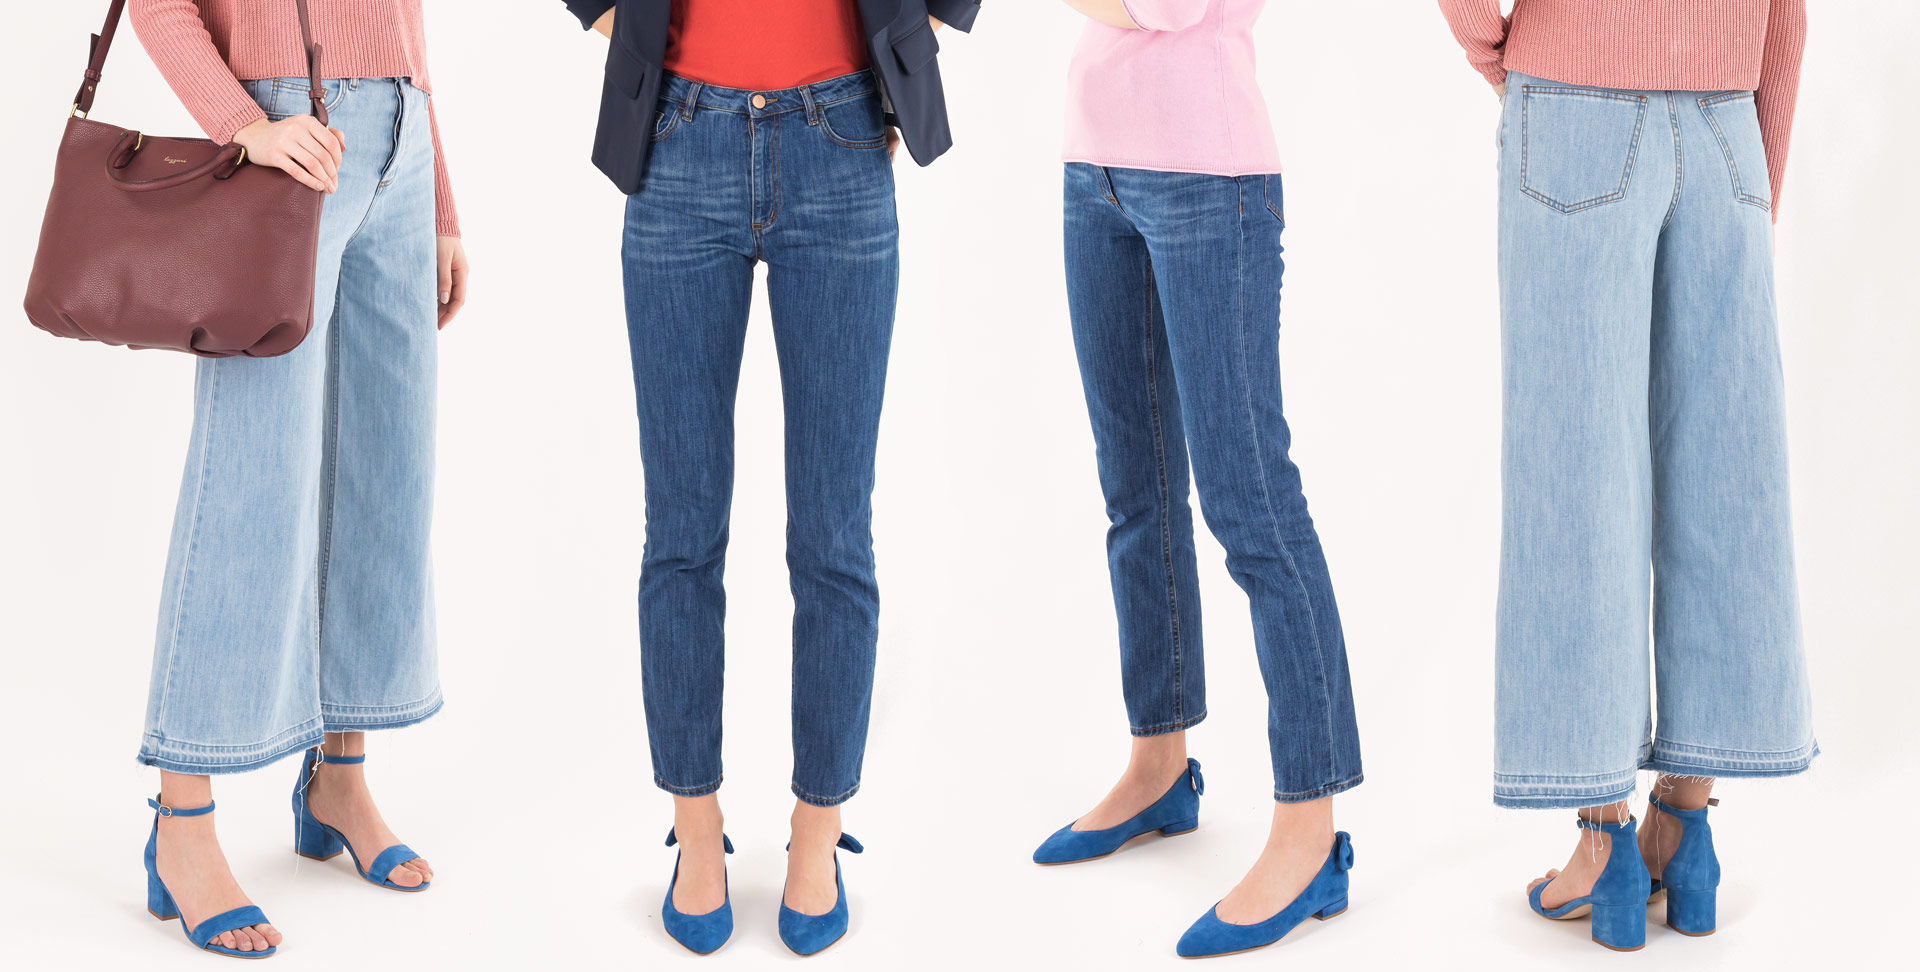 JEANS OR JEANS?